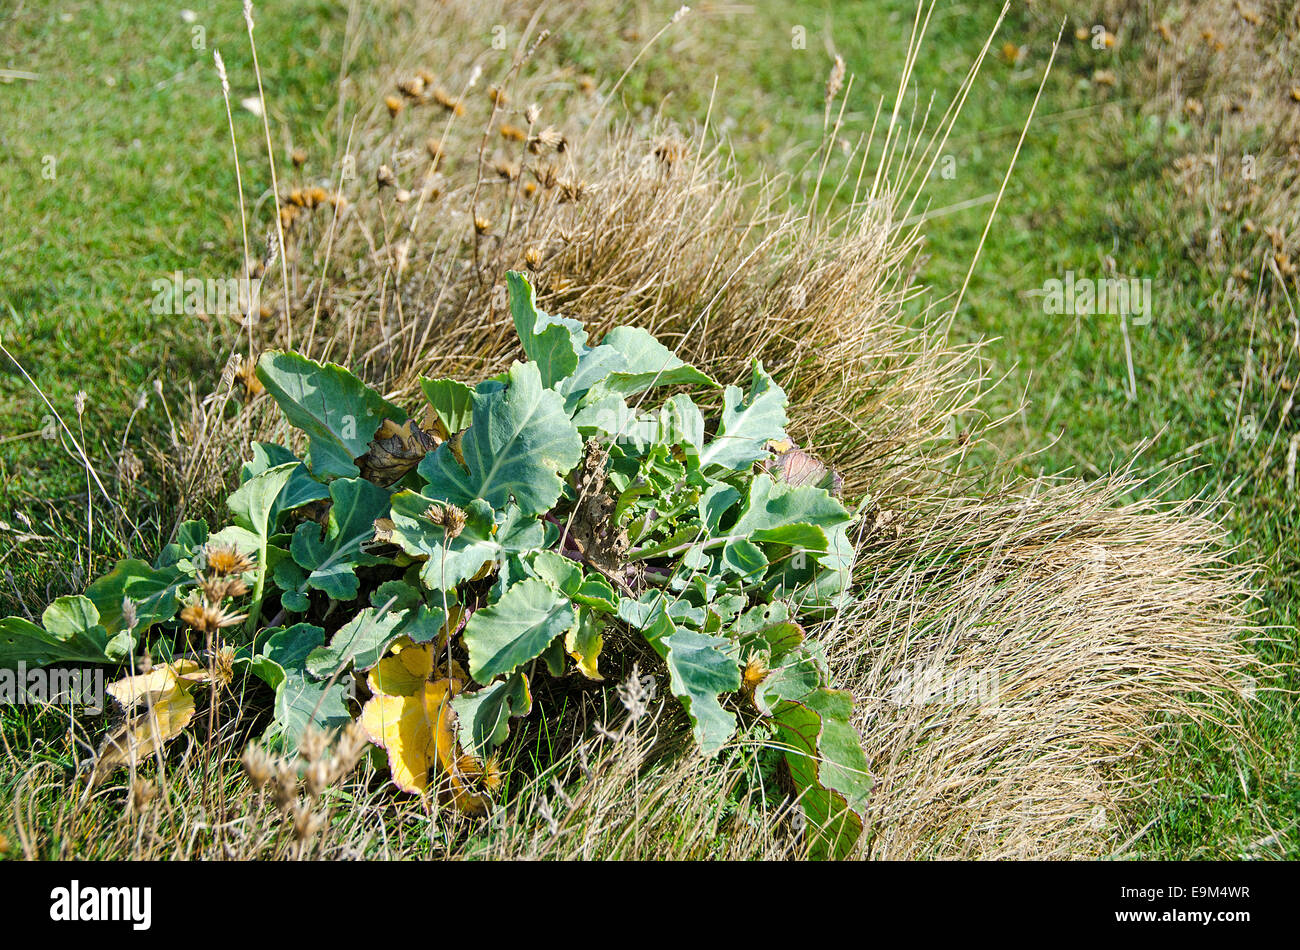 Wild cabbage or sea cabbage,  Brassica oleracea, a nationally scarce plant found growing on chalk downland - Stock Image